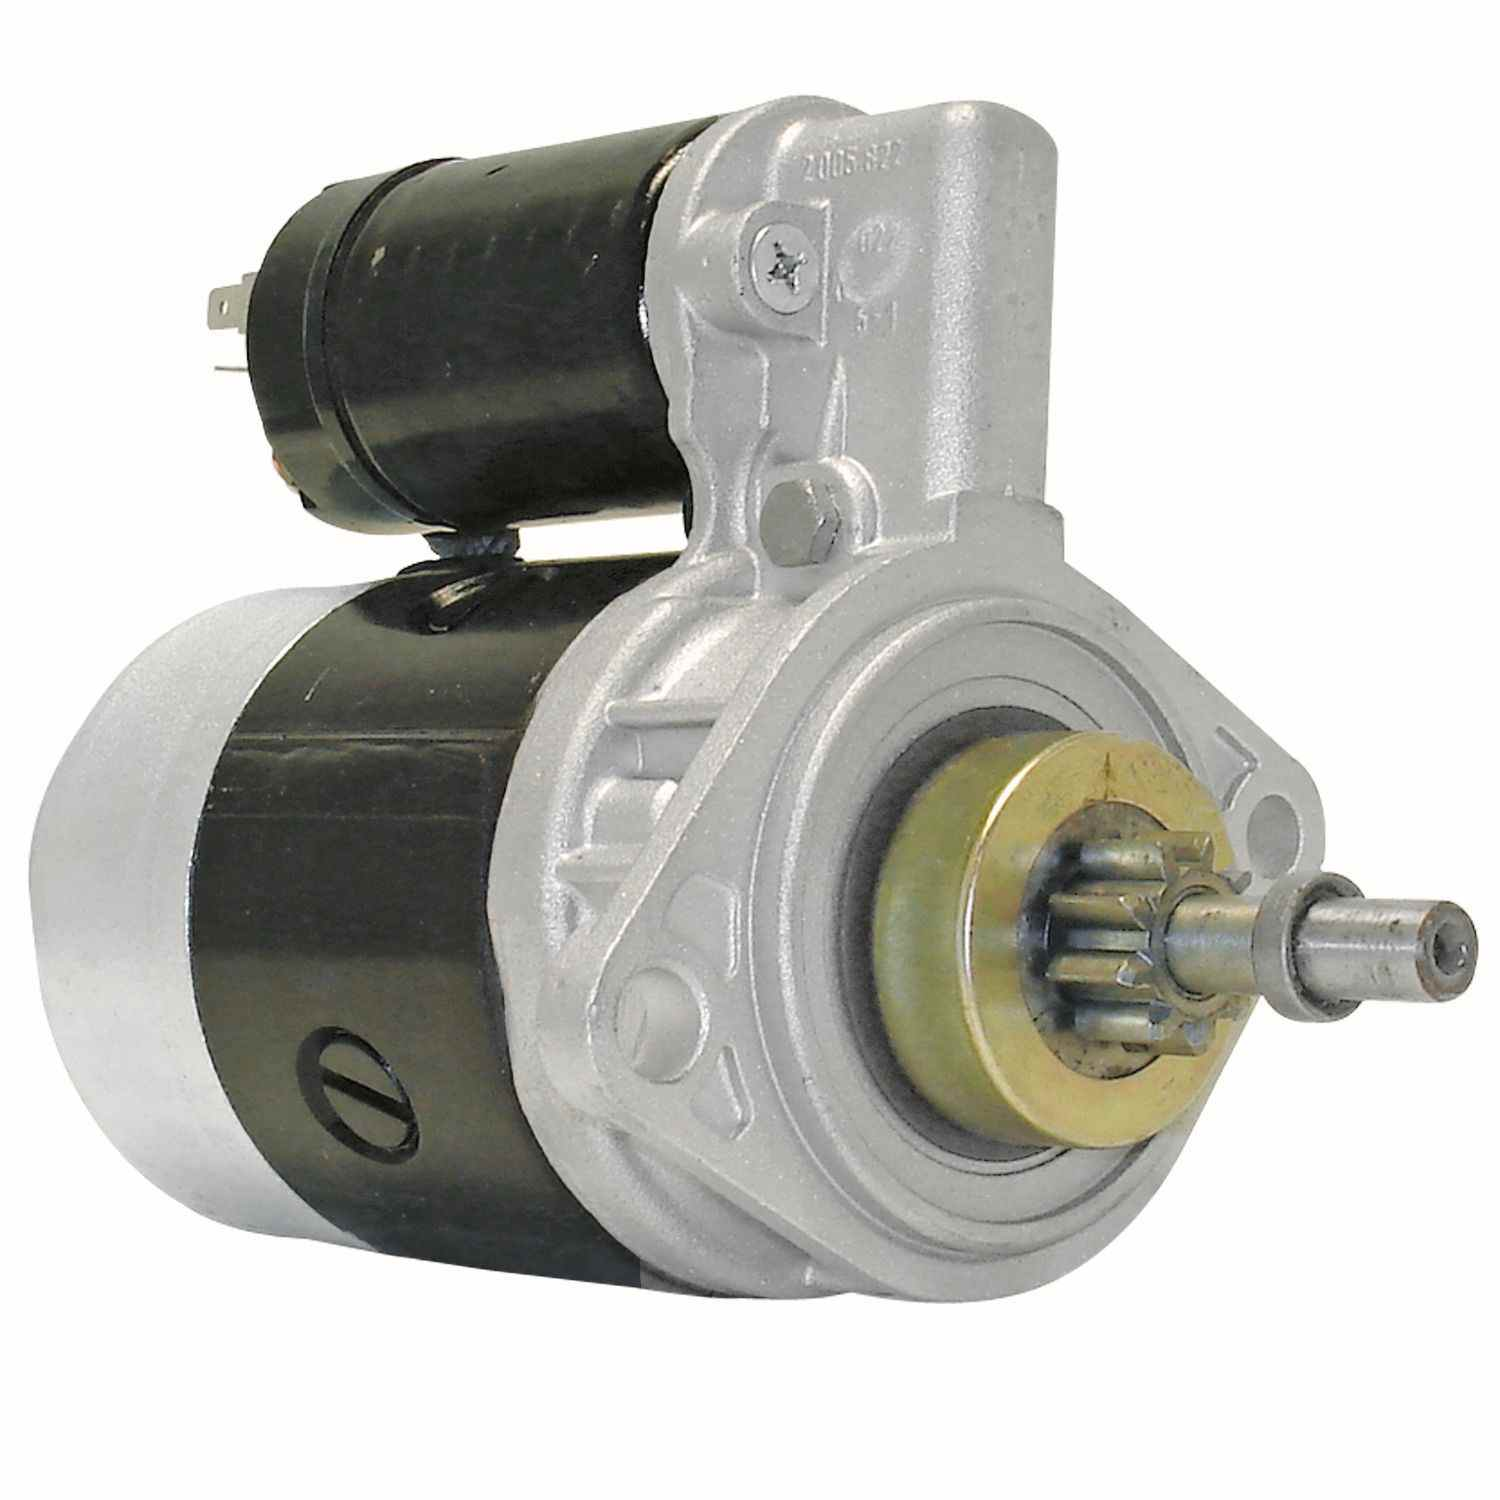 ACDELCO GOLD/PROFESSIONAL - Reman Starter Motor - DCC 336-1308